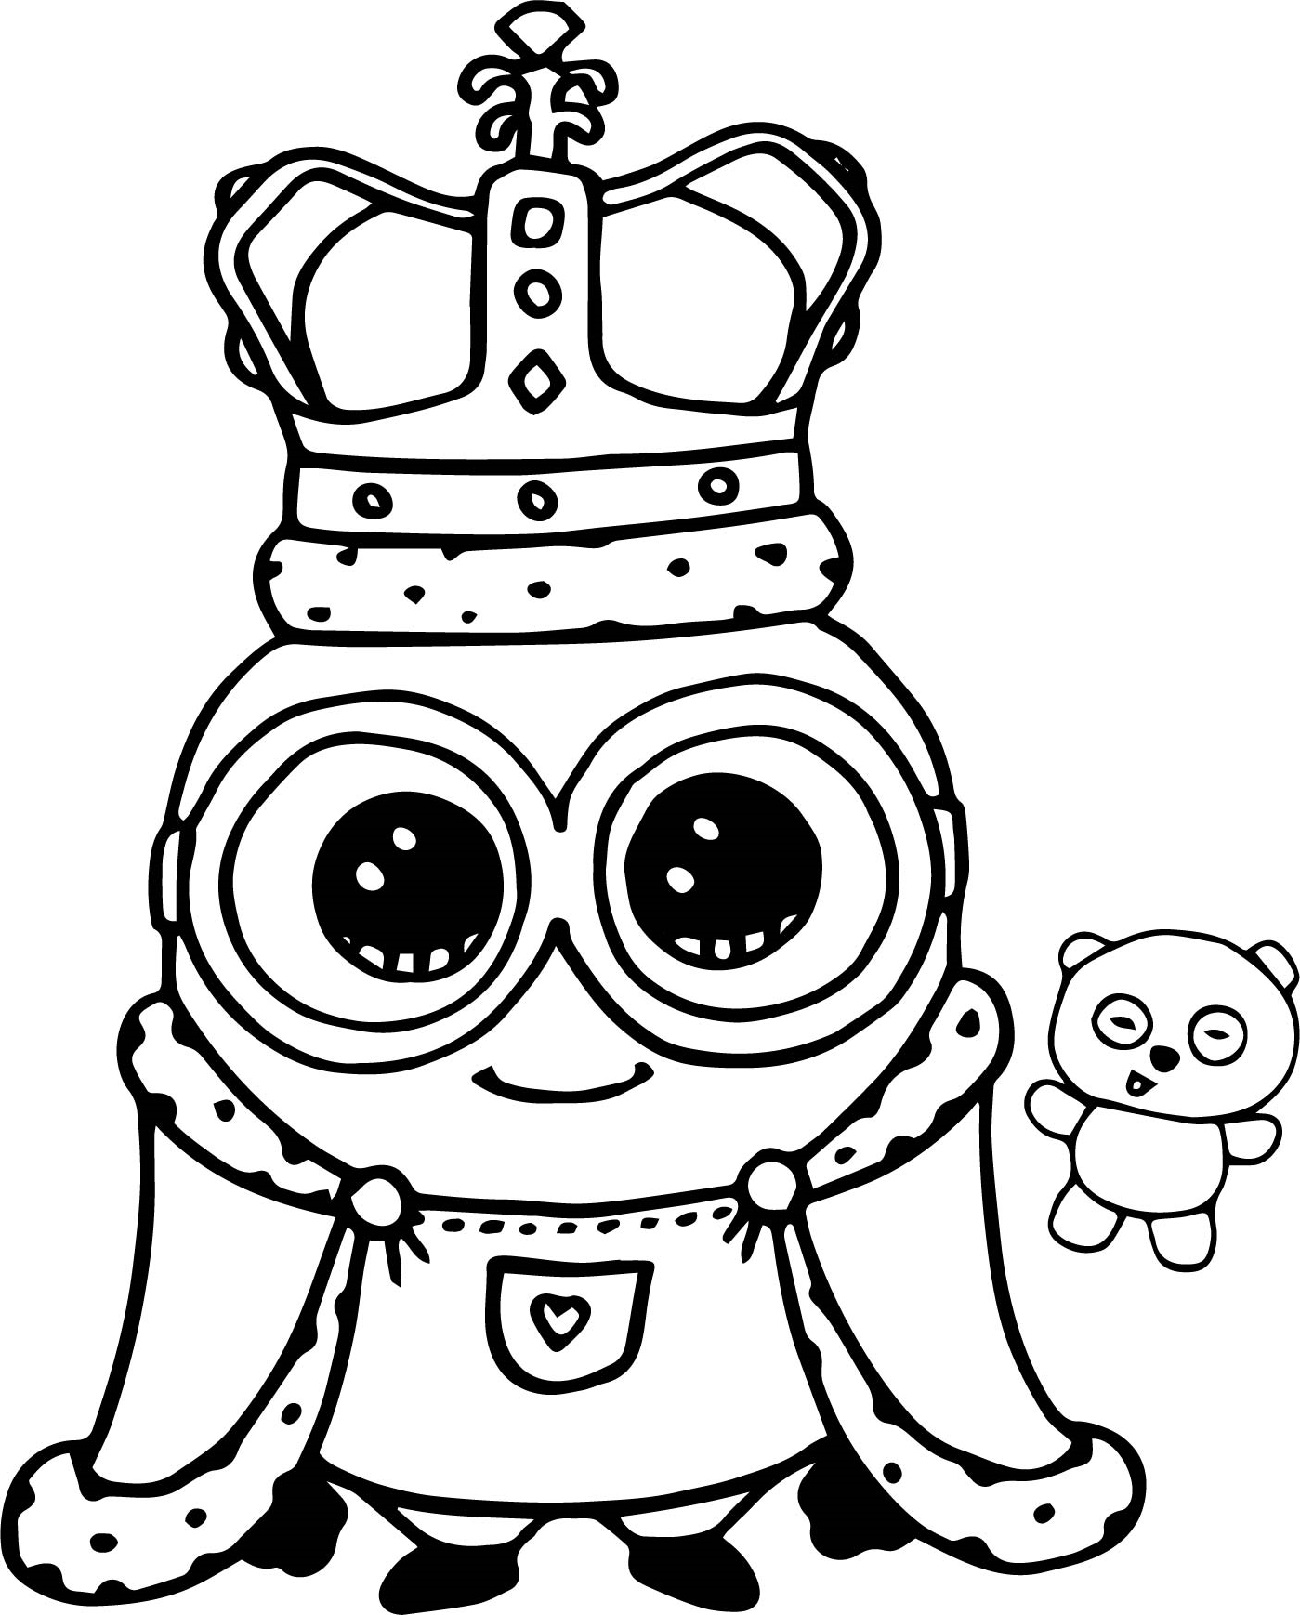 minion colouring page lots of minions coloring pages coloring home minion colouring page